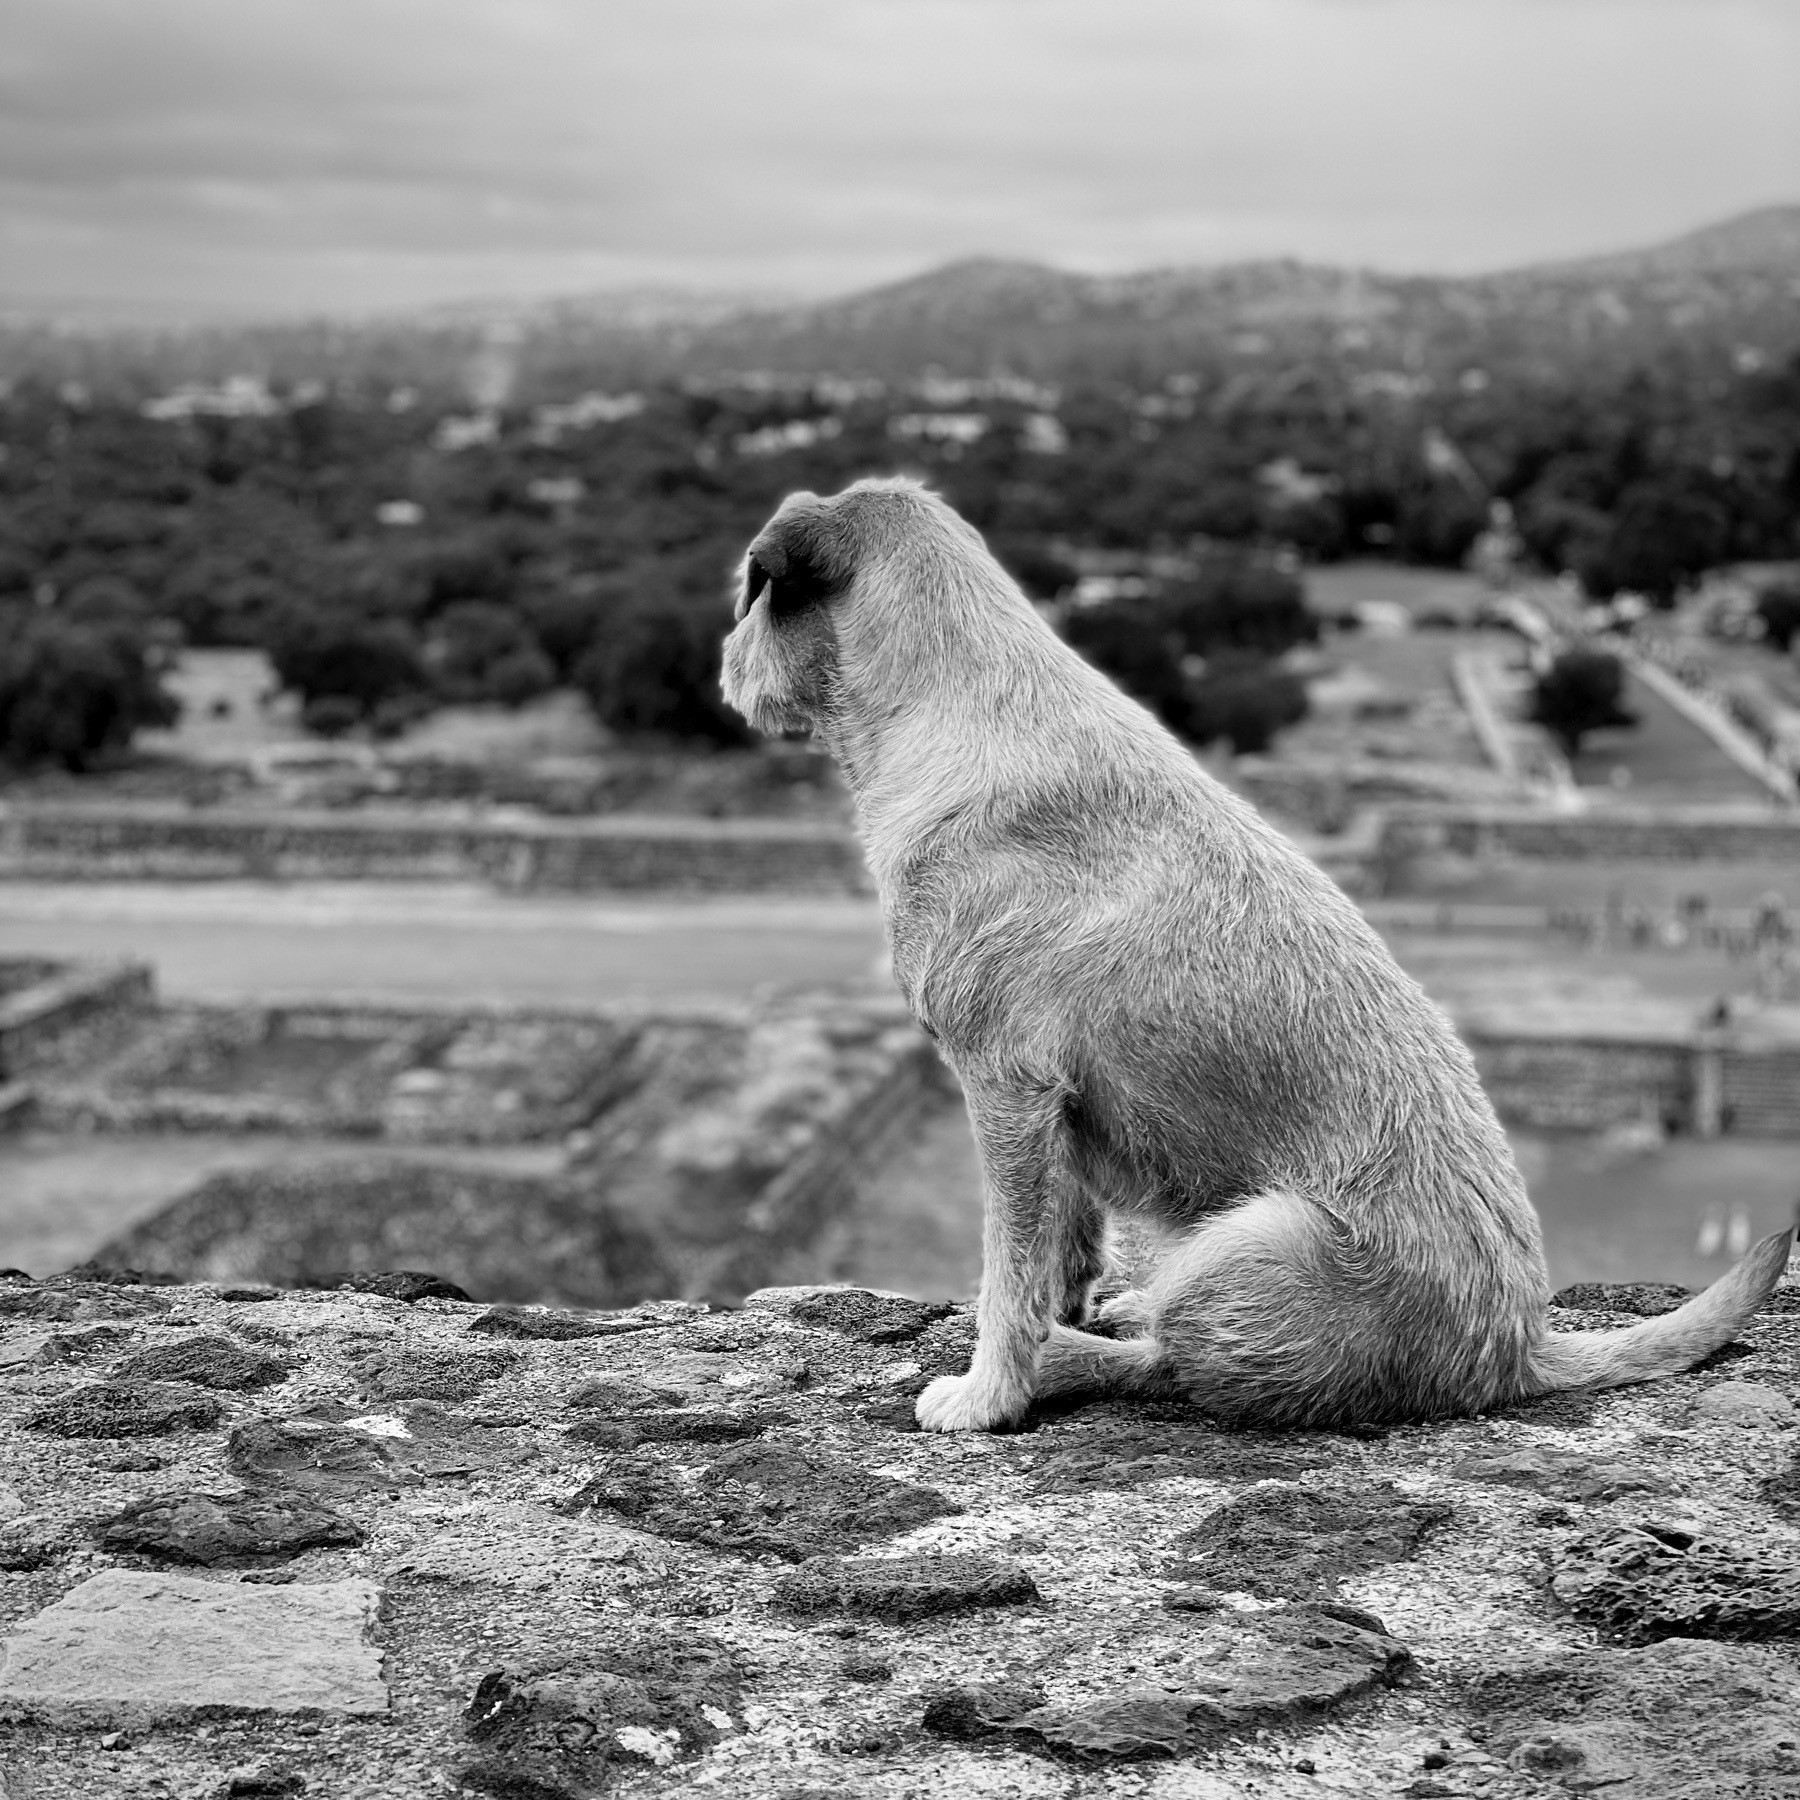 Dog looking out over the valley from the top of a pyramid in Mexico City.